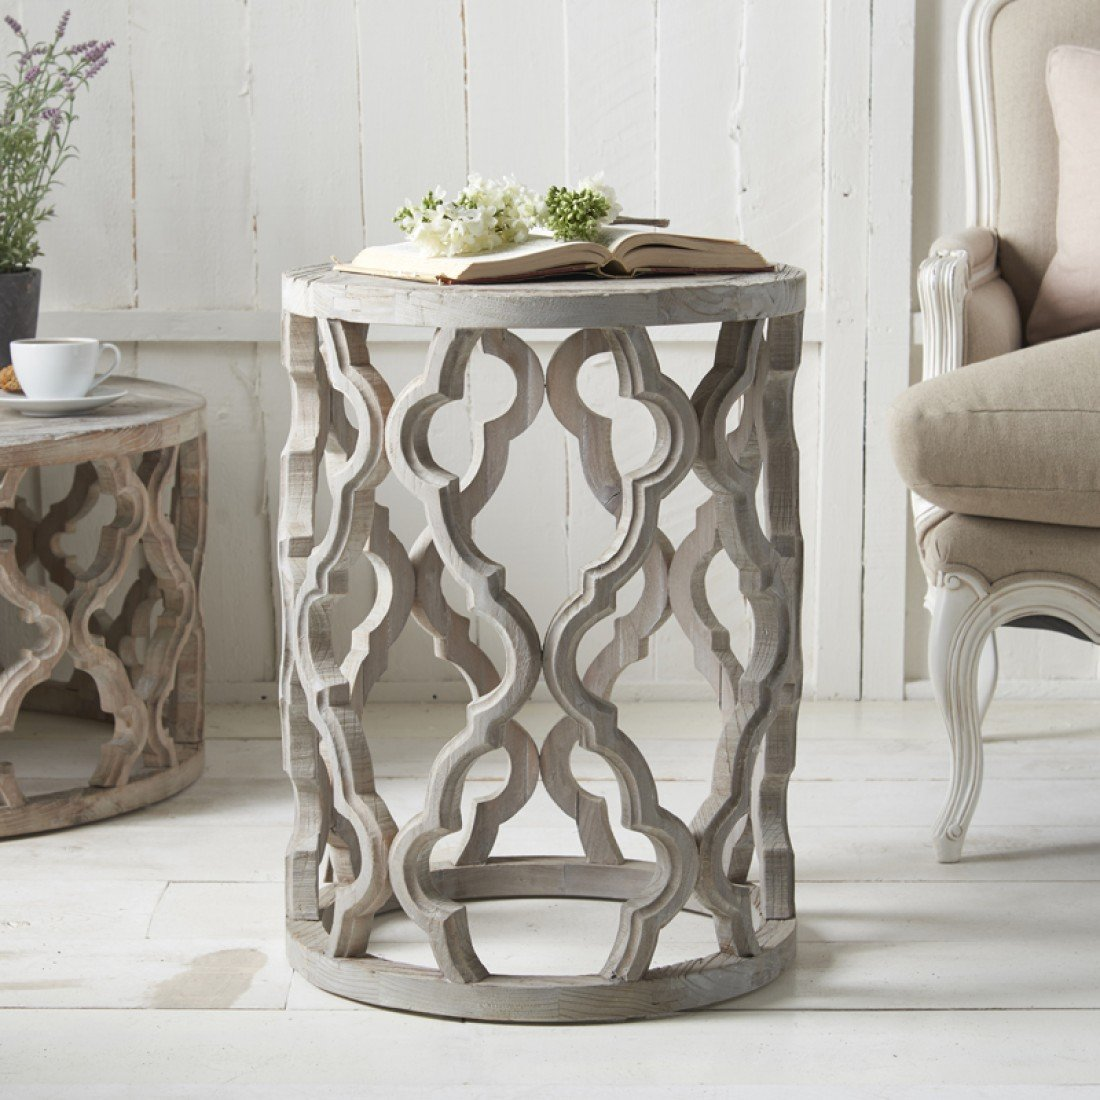 Fretwork Coffee Table.Round Fretwork End Table Side Tables